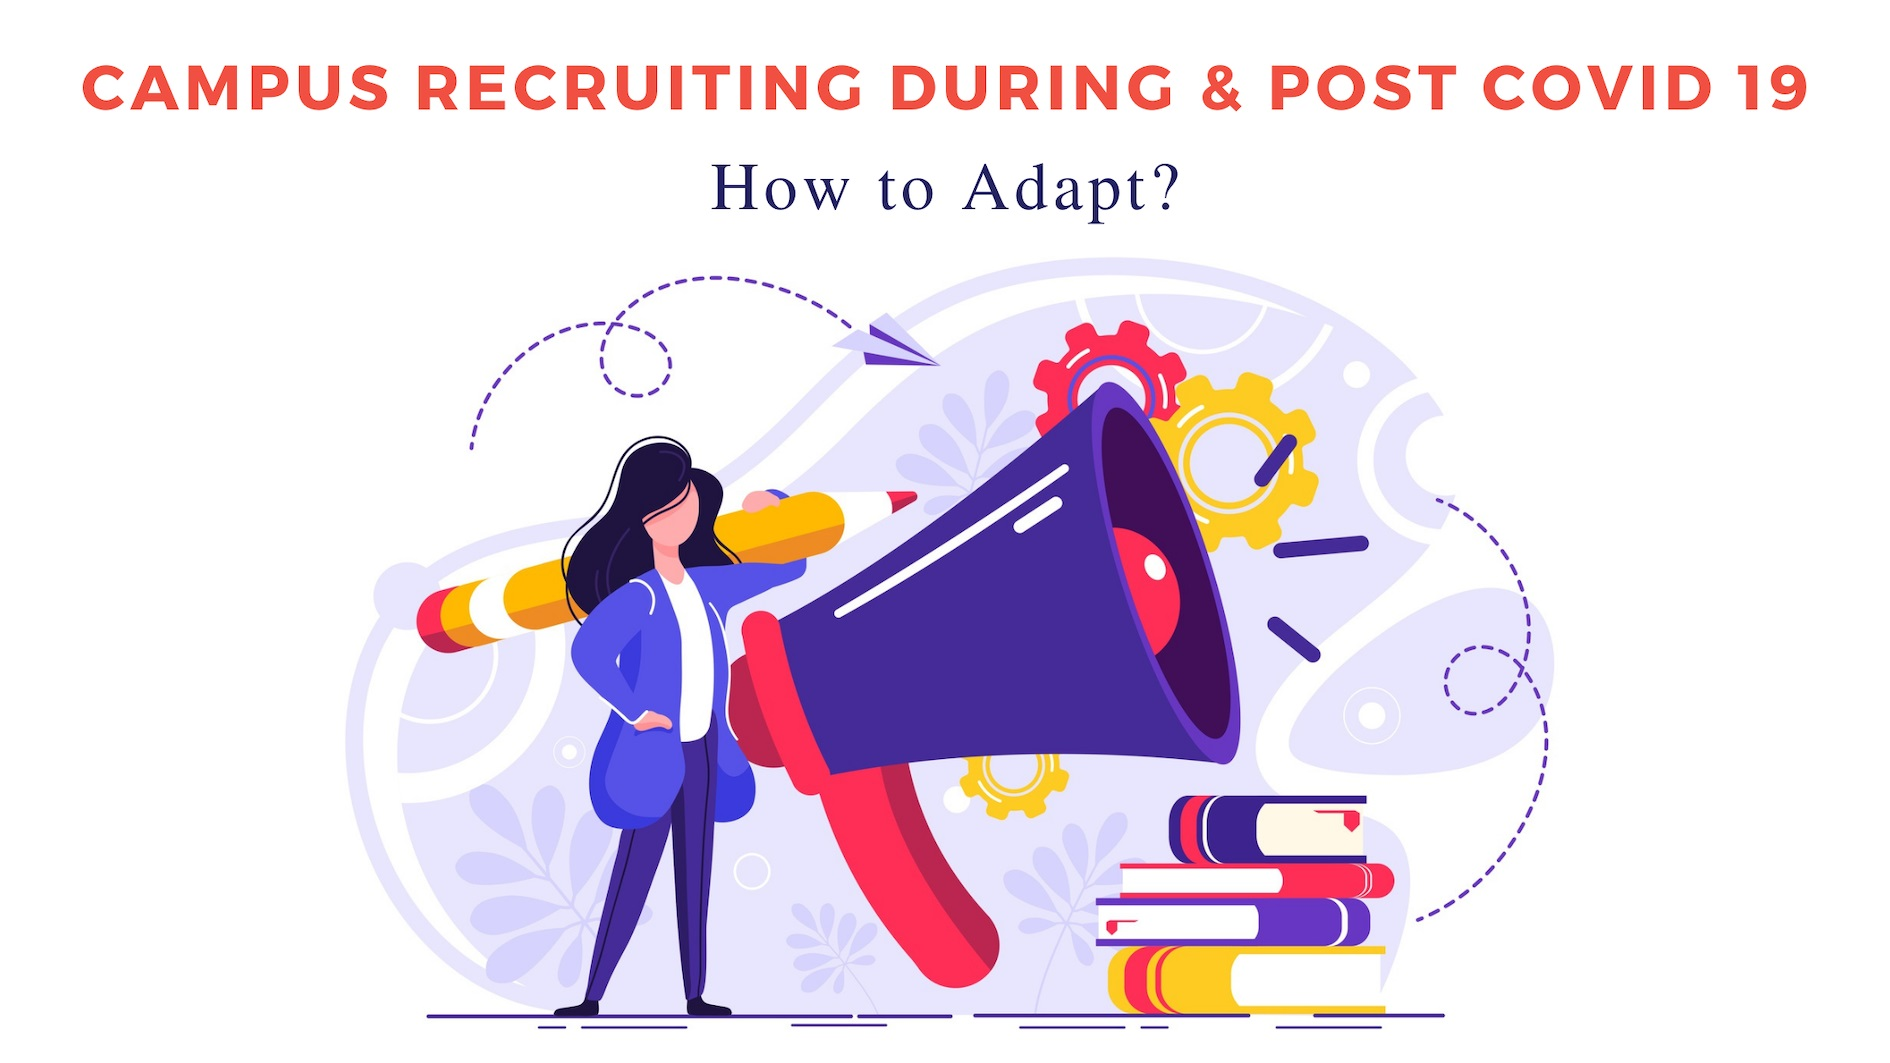 Campus Recruiting During and Post COVID-19: How to Adapt?